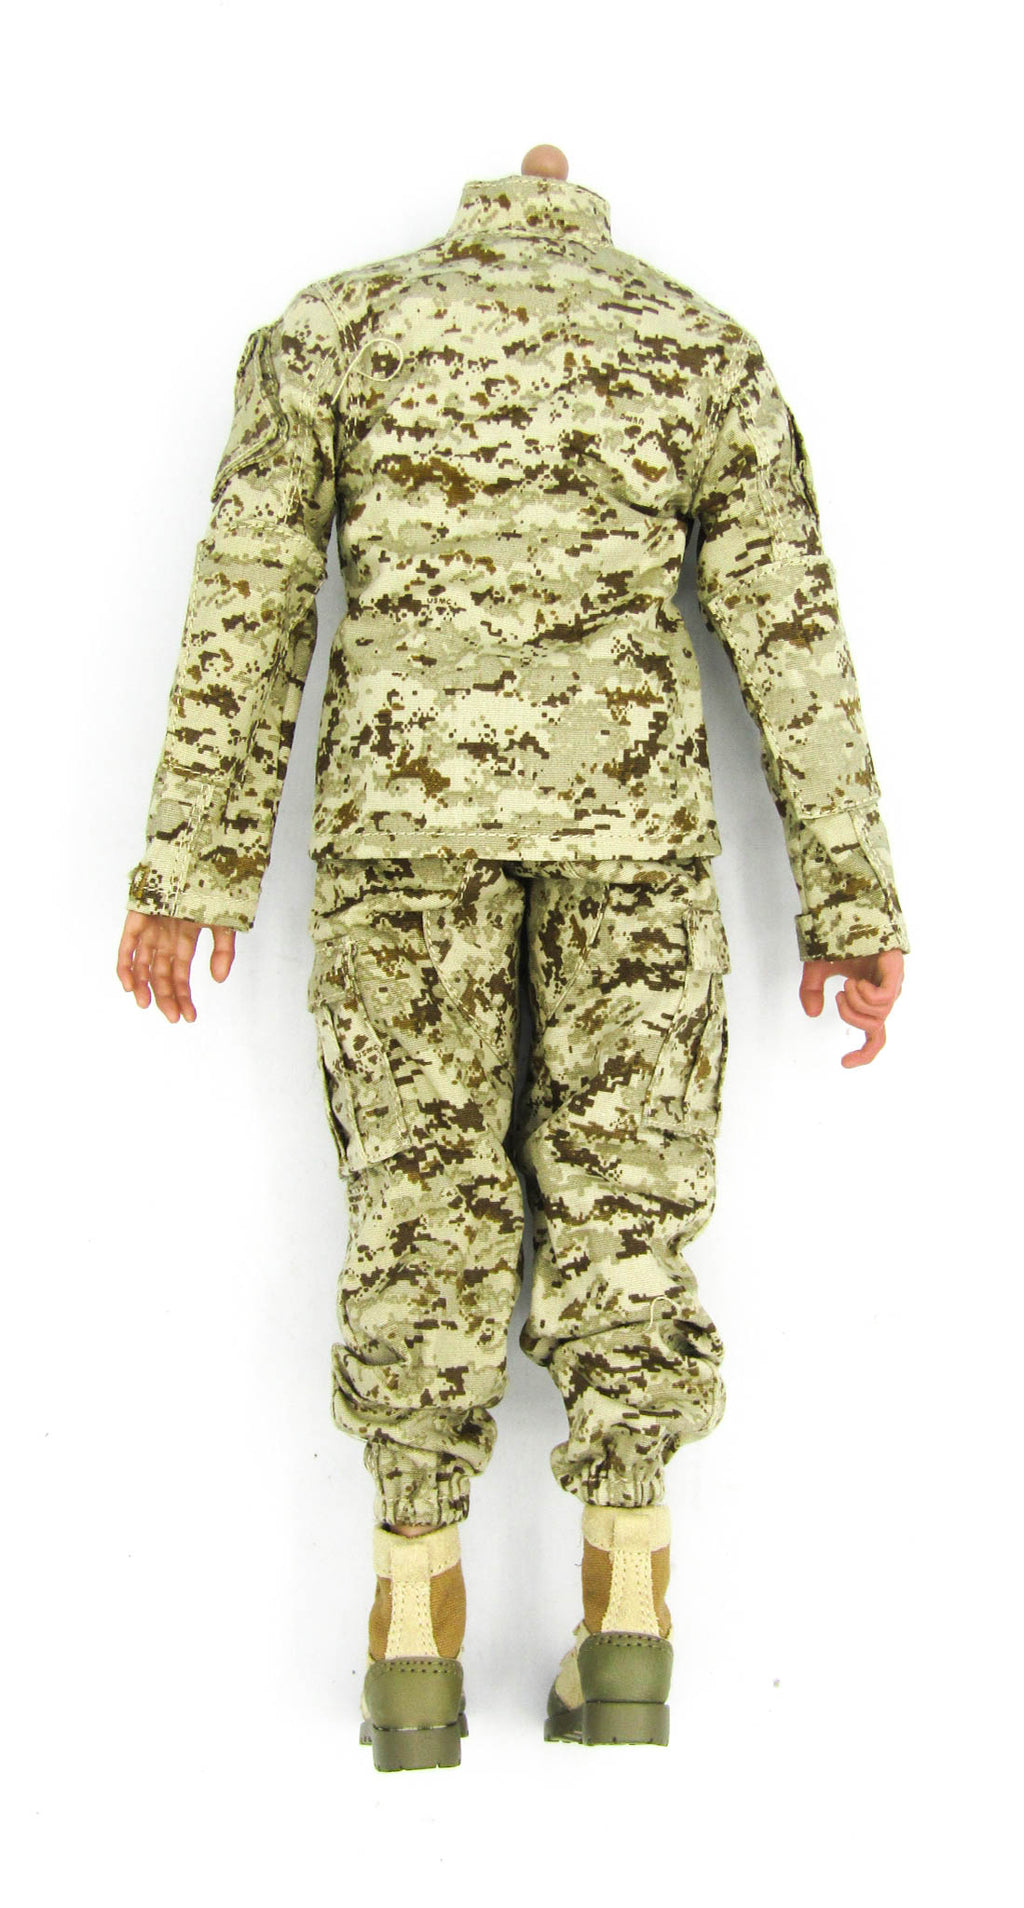 USMC 2nd MEB Helmand - Male Dressed Body w/AOR1 Uniform & Boots